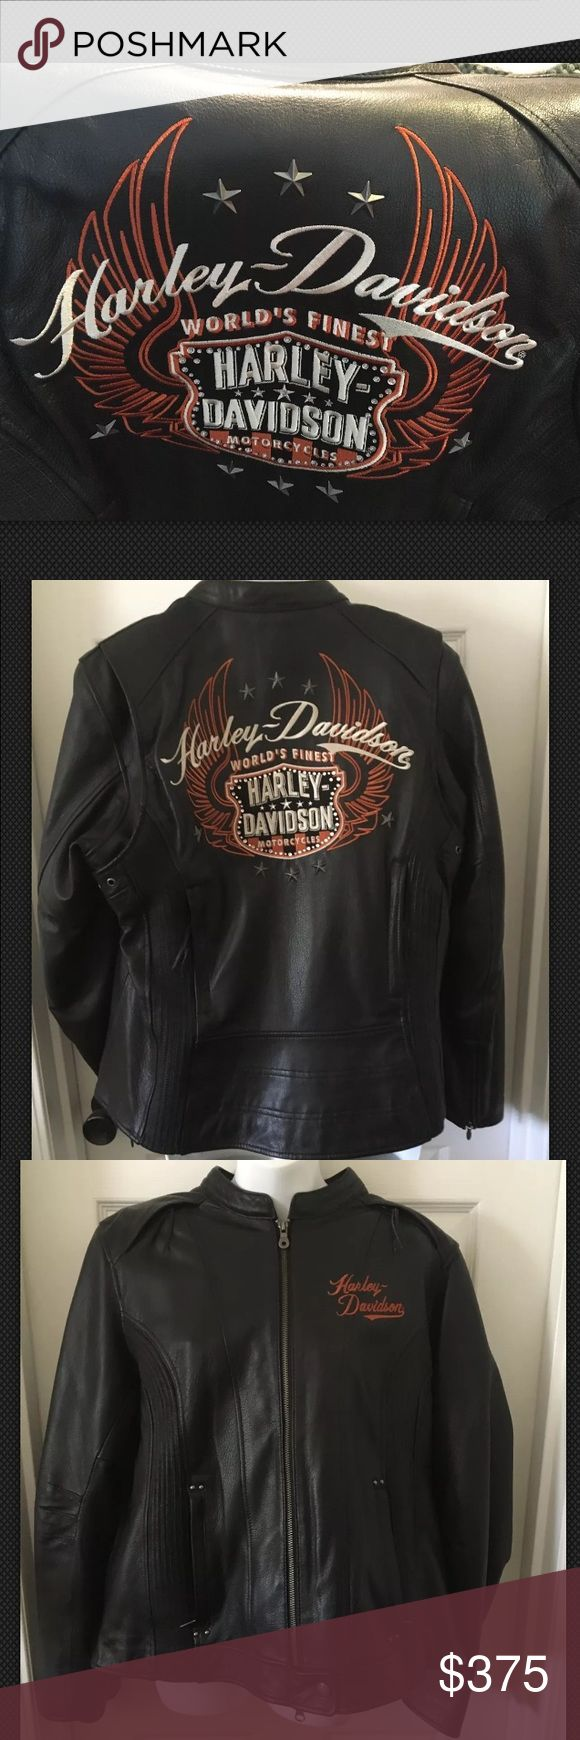 Harley Davidson 3-in-1 Leather Riding Jacket Wings HD 3-in-1 Motorcycle riding jacket NWT. Marked size 1W but FITS SMALL compared to other 1W HD leather jackets. PLEASE see measurements in comments. Wear it three ways: *Leather jacket only *Nylon hoodie only (with thumb holes) *Or the two pieces can be worn together Perfect but for one tiny hole in the lining of the leather jacket where a price tag or possibly the inner jacket was attached. MORE PHOTOS IN ANOTHER LISTING! These photos show…